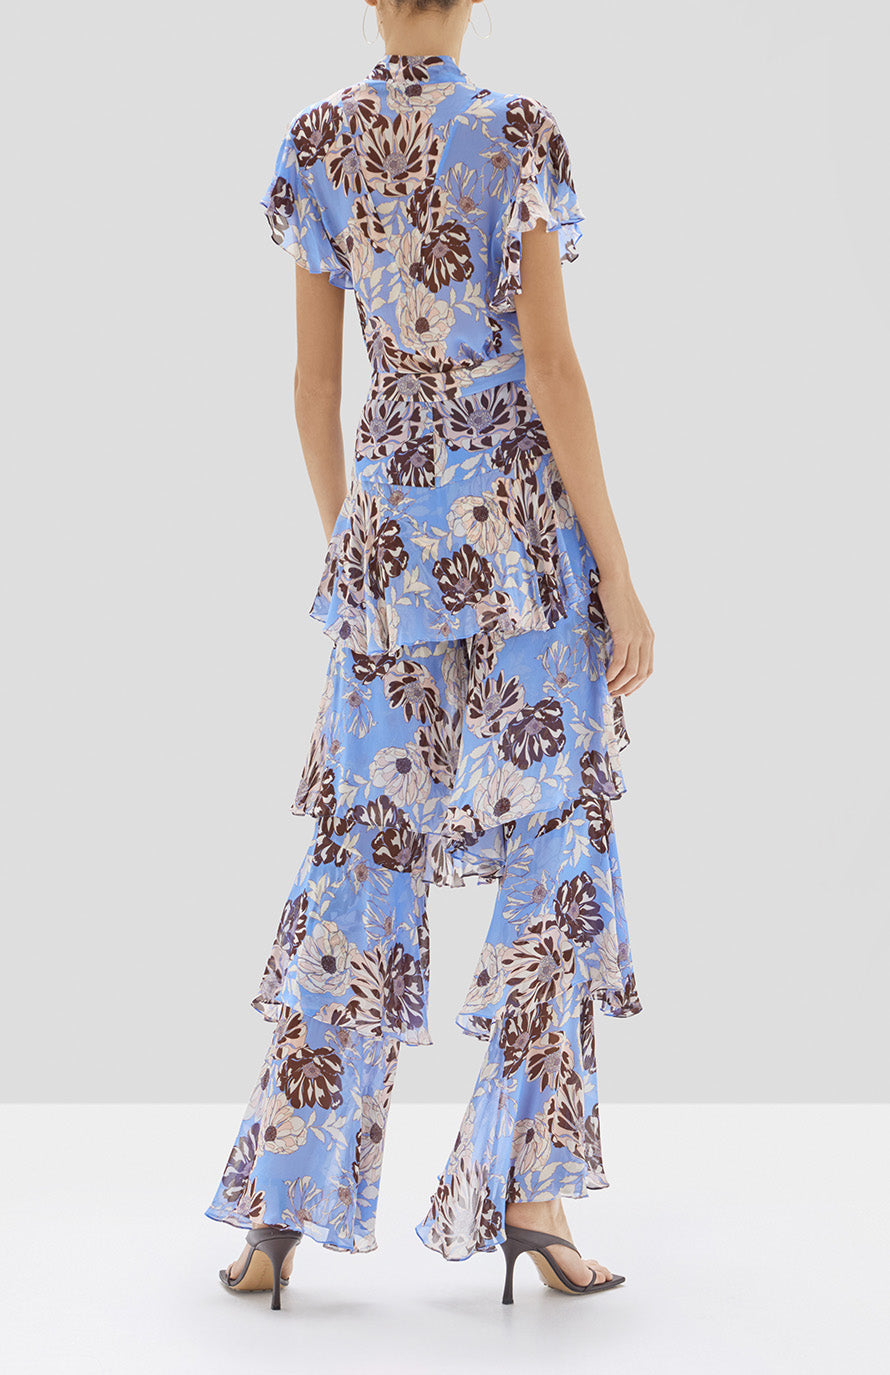 Alexis Elyria Pant and Dessie Top in Blue Floral From Pre Spring 2020 - Rear View